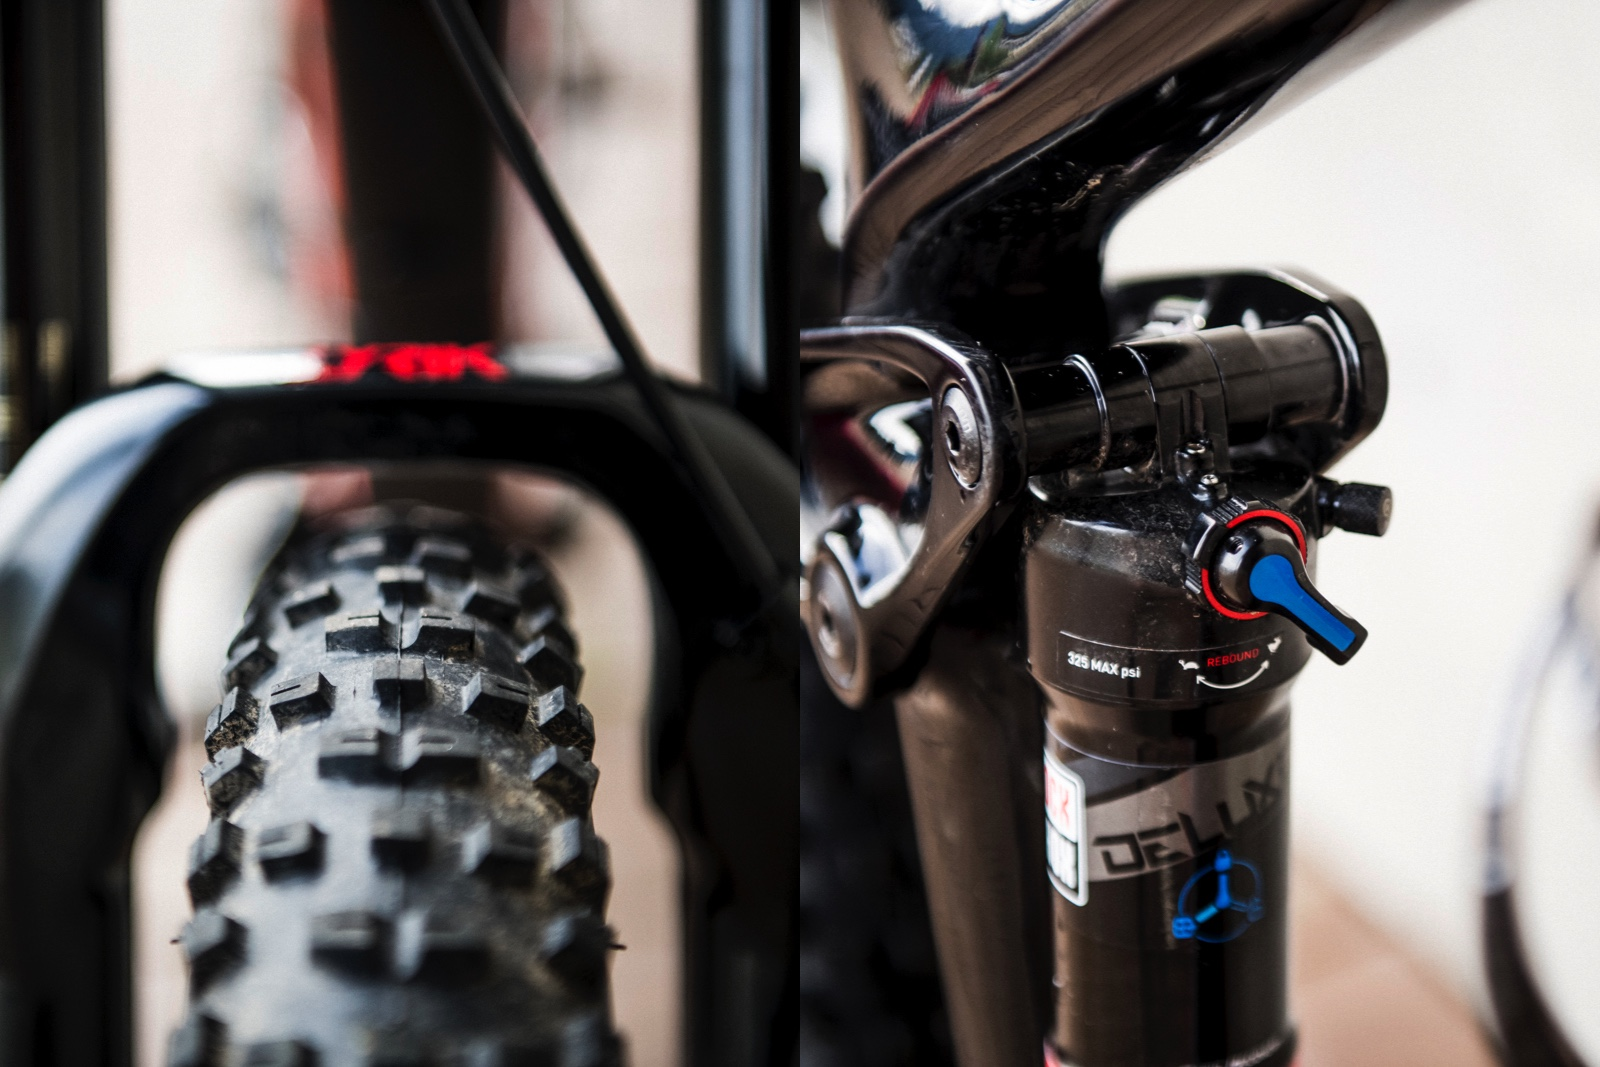 The Remedy is spec'd with RockShox suspension; up front it featured a travel adjust Lyrik with 160mm of travel and out back it had the new metric sized, high volume RockShox Deluxe.